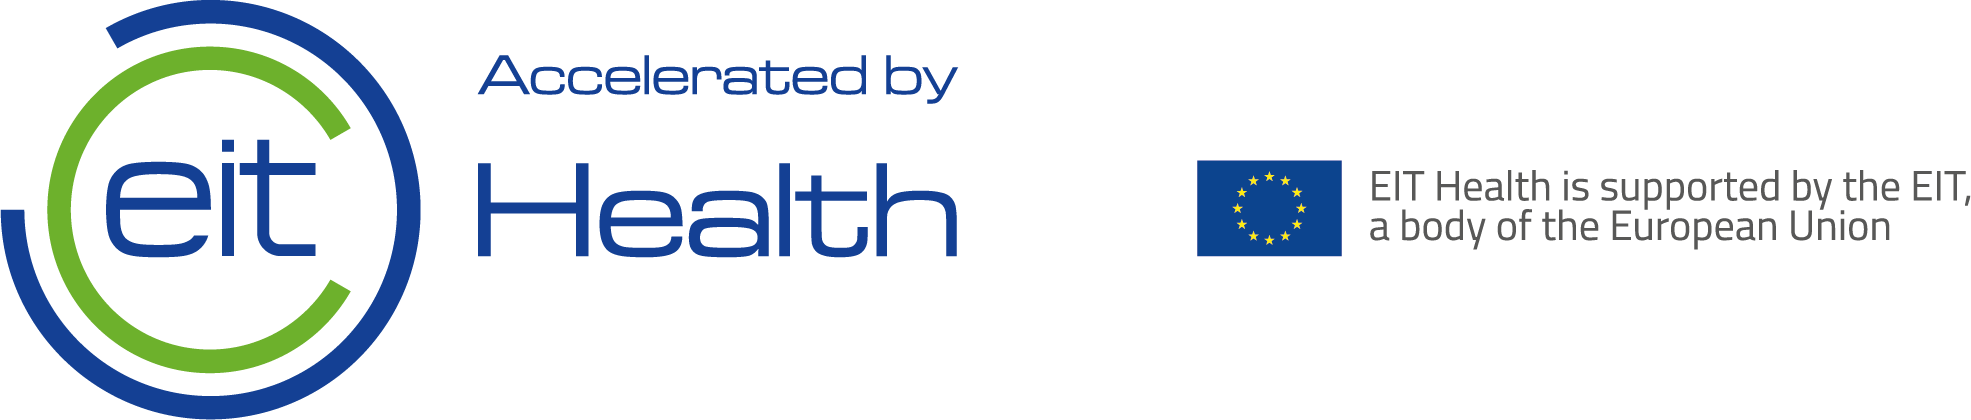 EIT Health is supported by the EIT, a body of the European Union